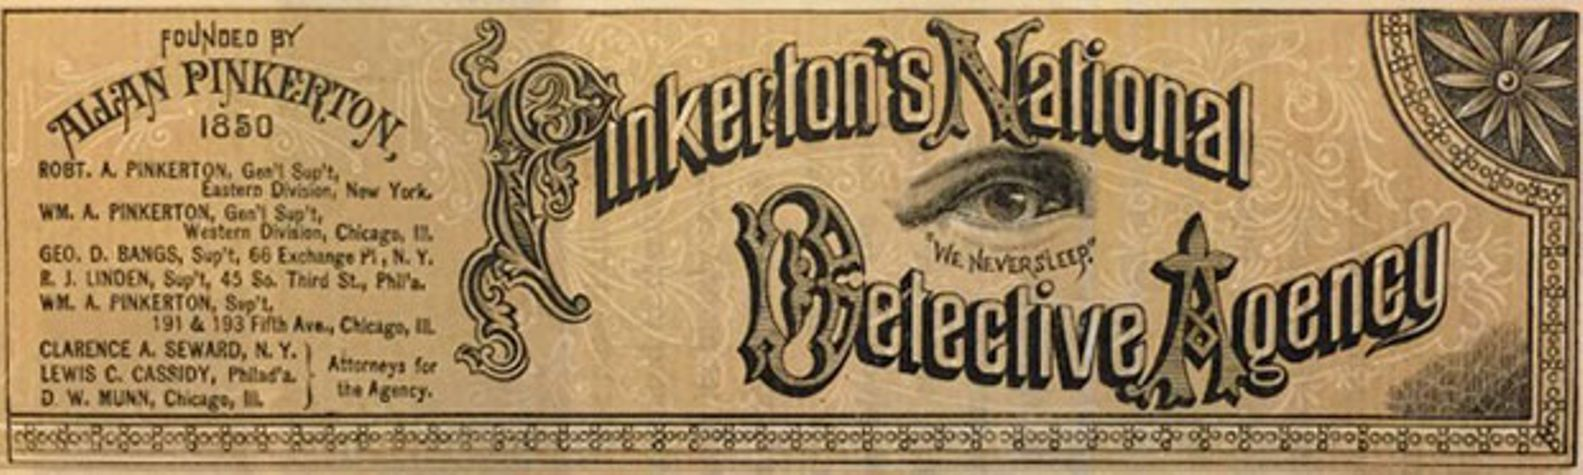 pinkerton's national detective agency logo